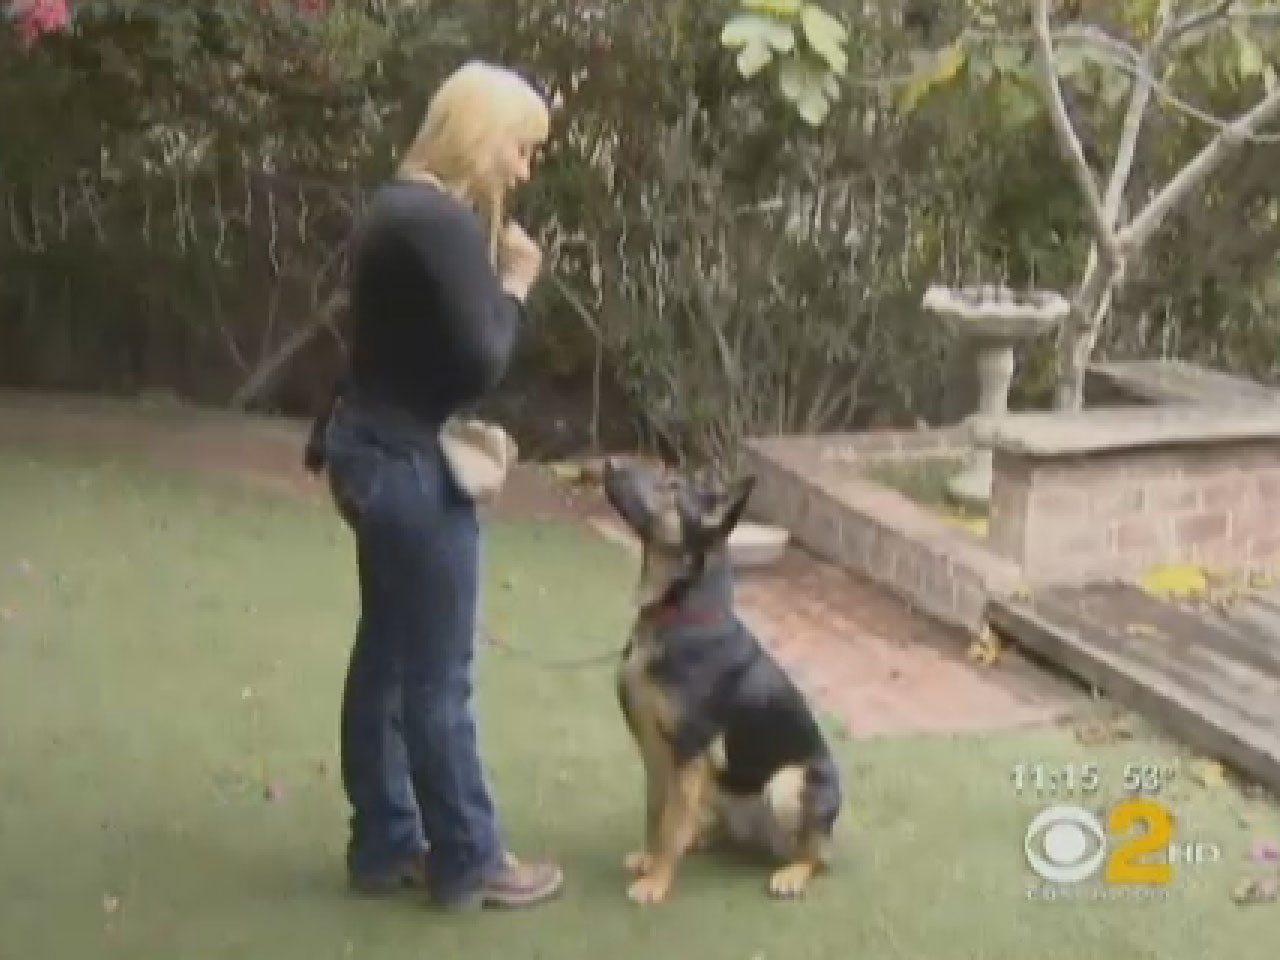 Doctor Dogs Being Trained To Sniff Out Ovarian Cancer Cbs News